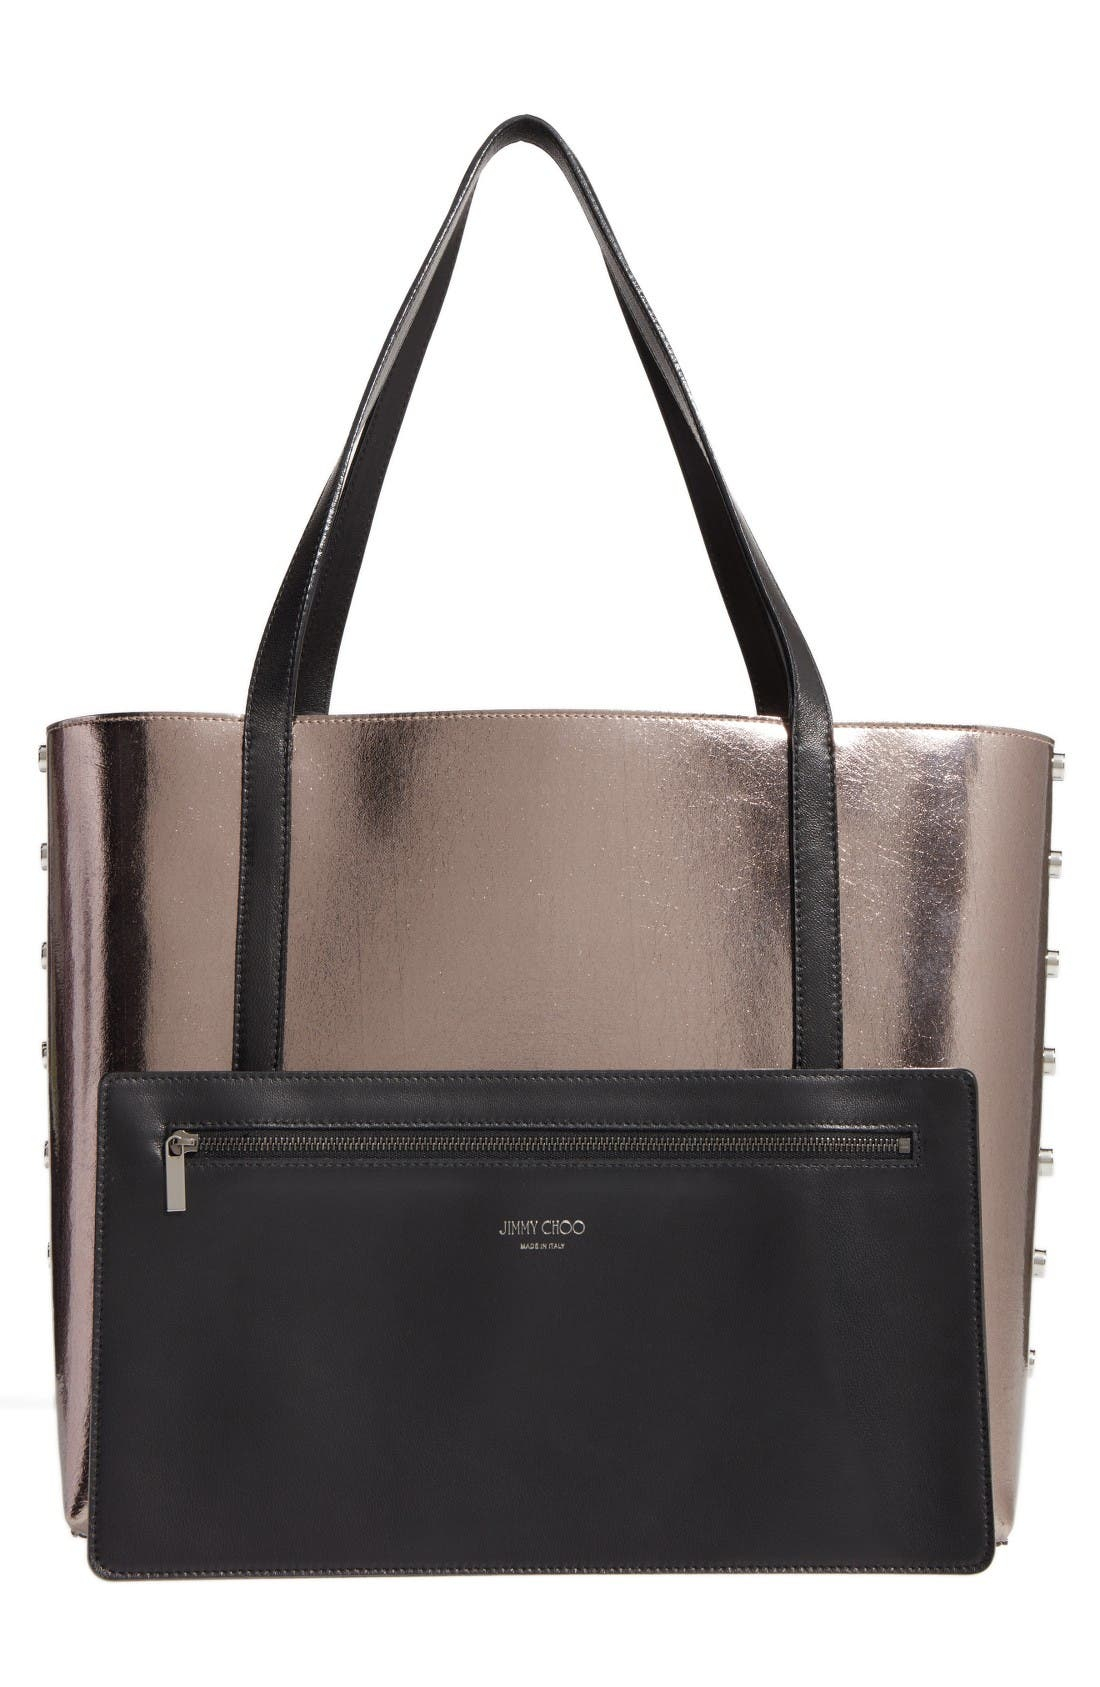 Twist East West Leather Tote,                             Alternate thumbnail 2, color,                             Black/Gunmetal/Dark Silver